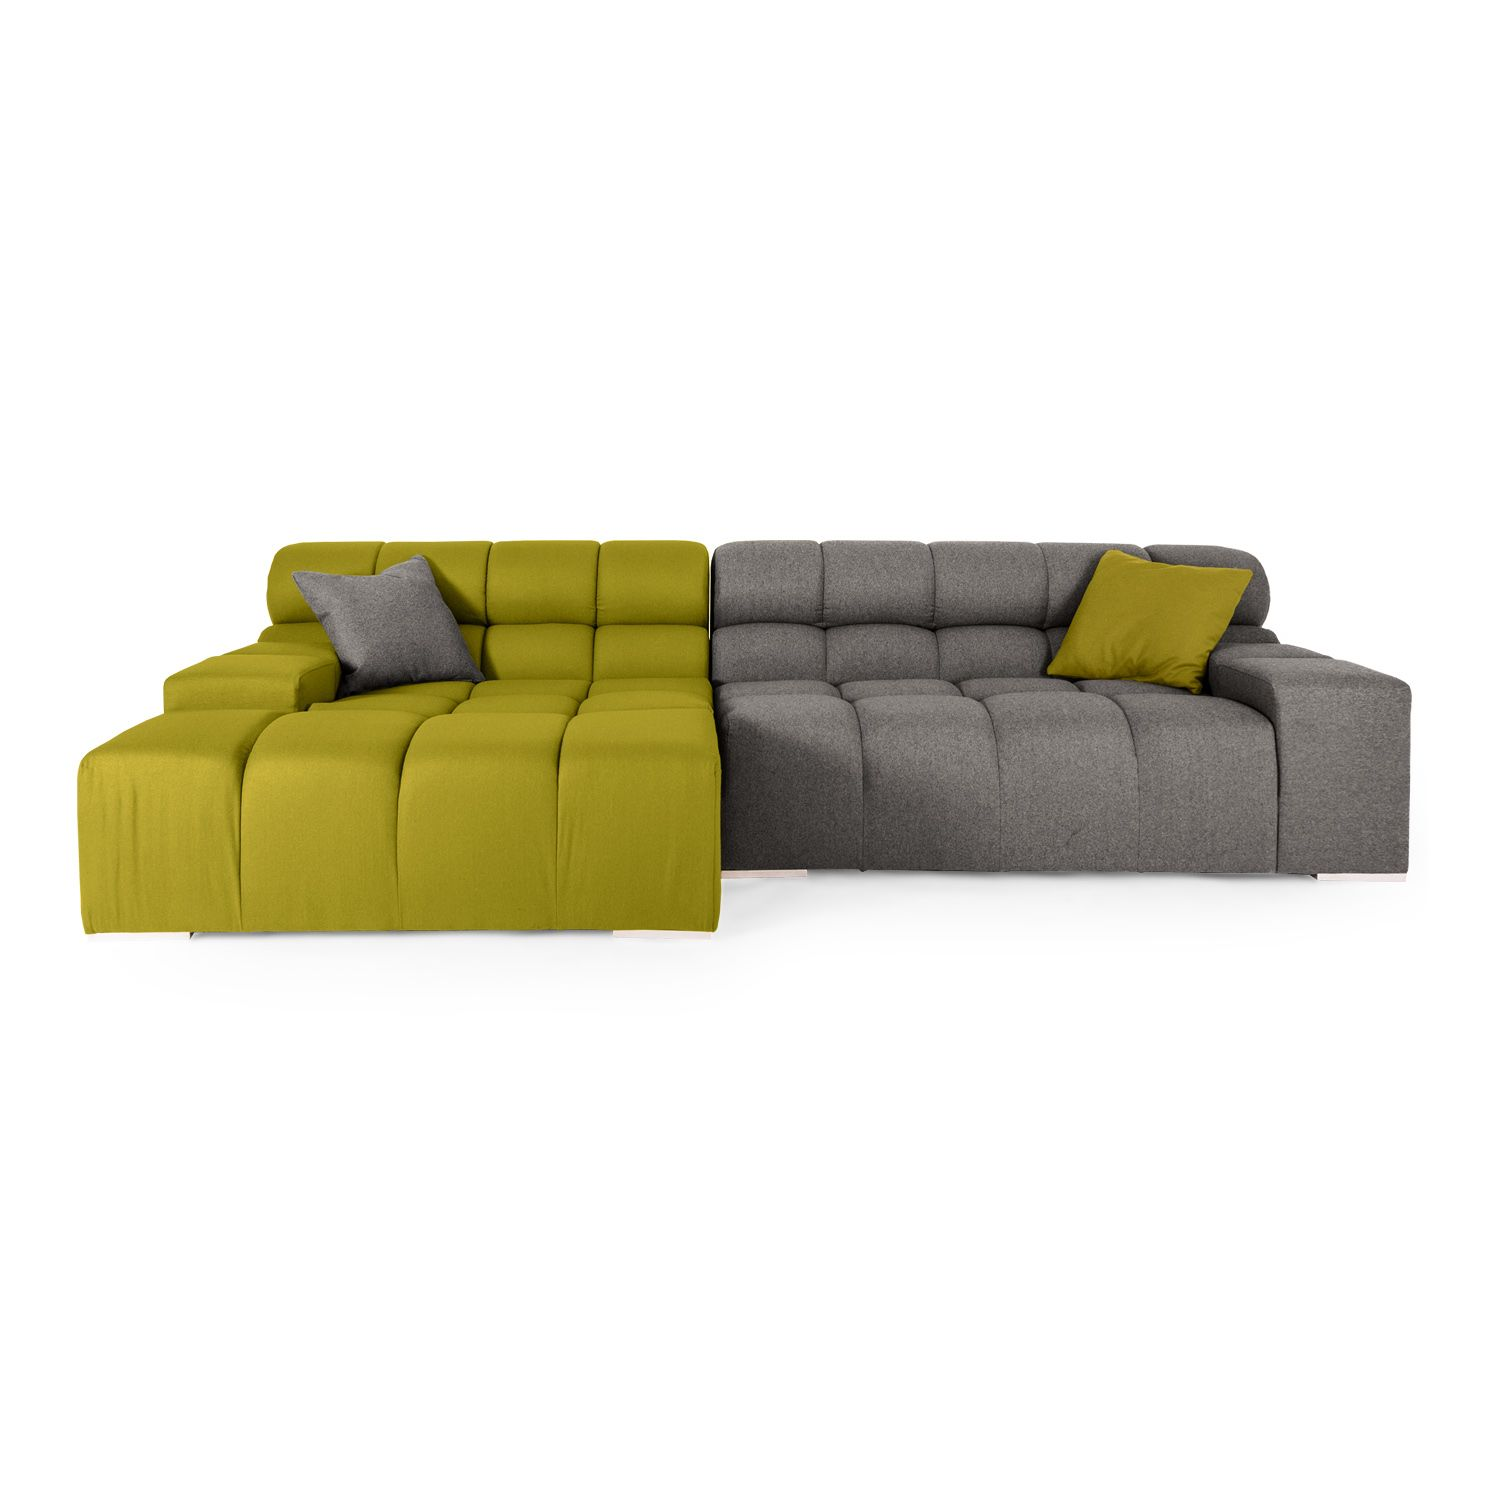 Cubix Modern Modular Sofa Sectional Left, Deco Moss/Cadet Grey |